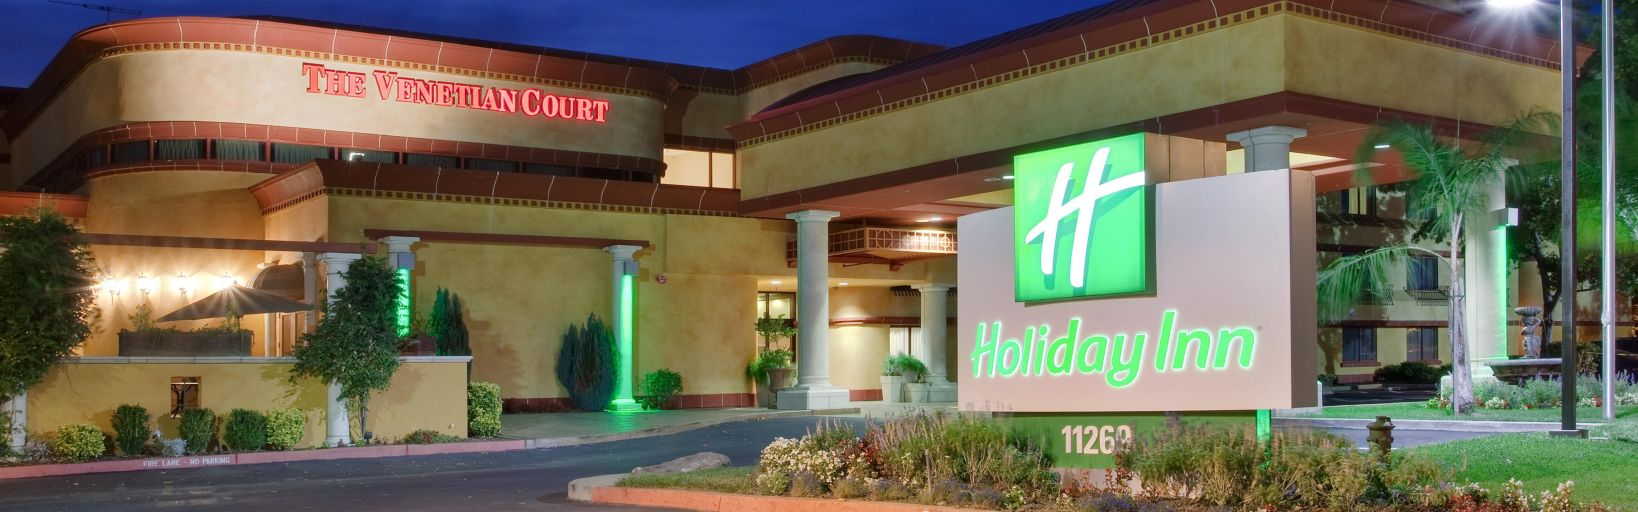 The Lovely Holiday Inn Rancho Cordova Exterior Front Desk Hotel